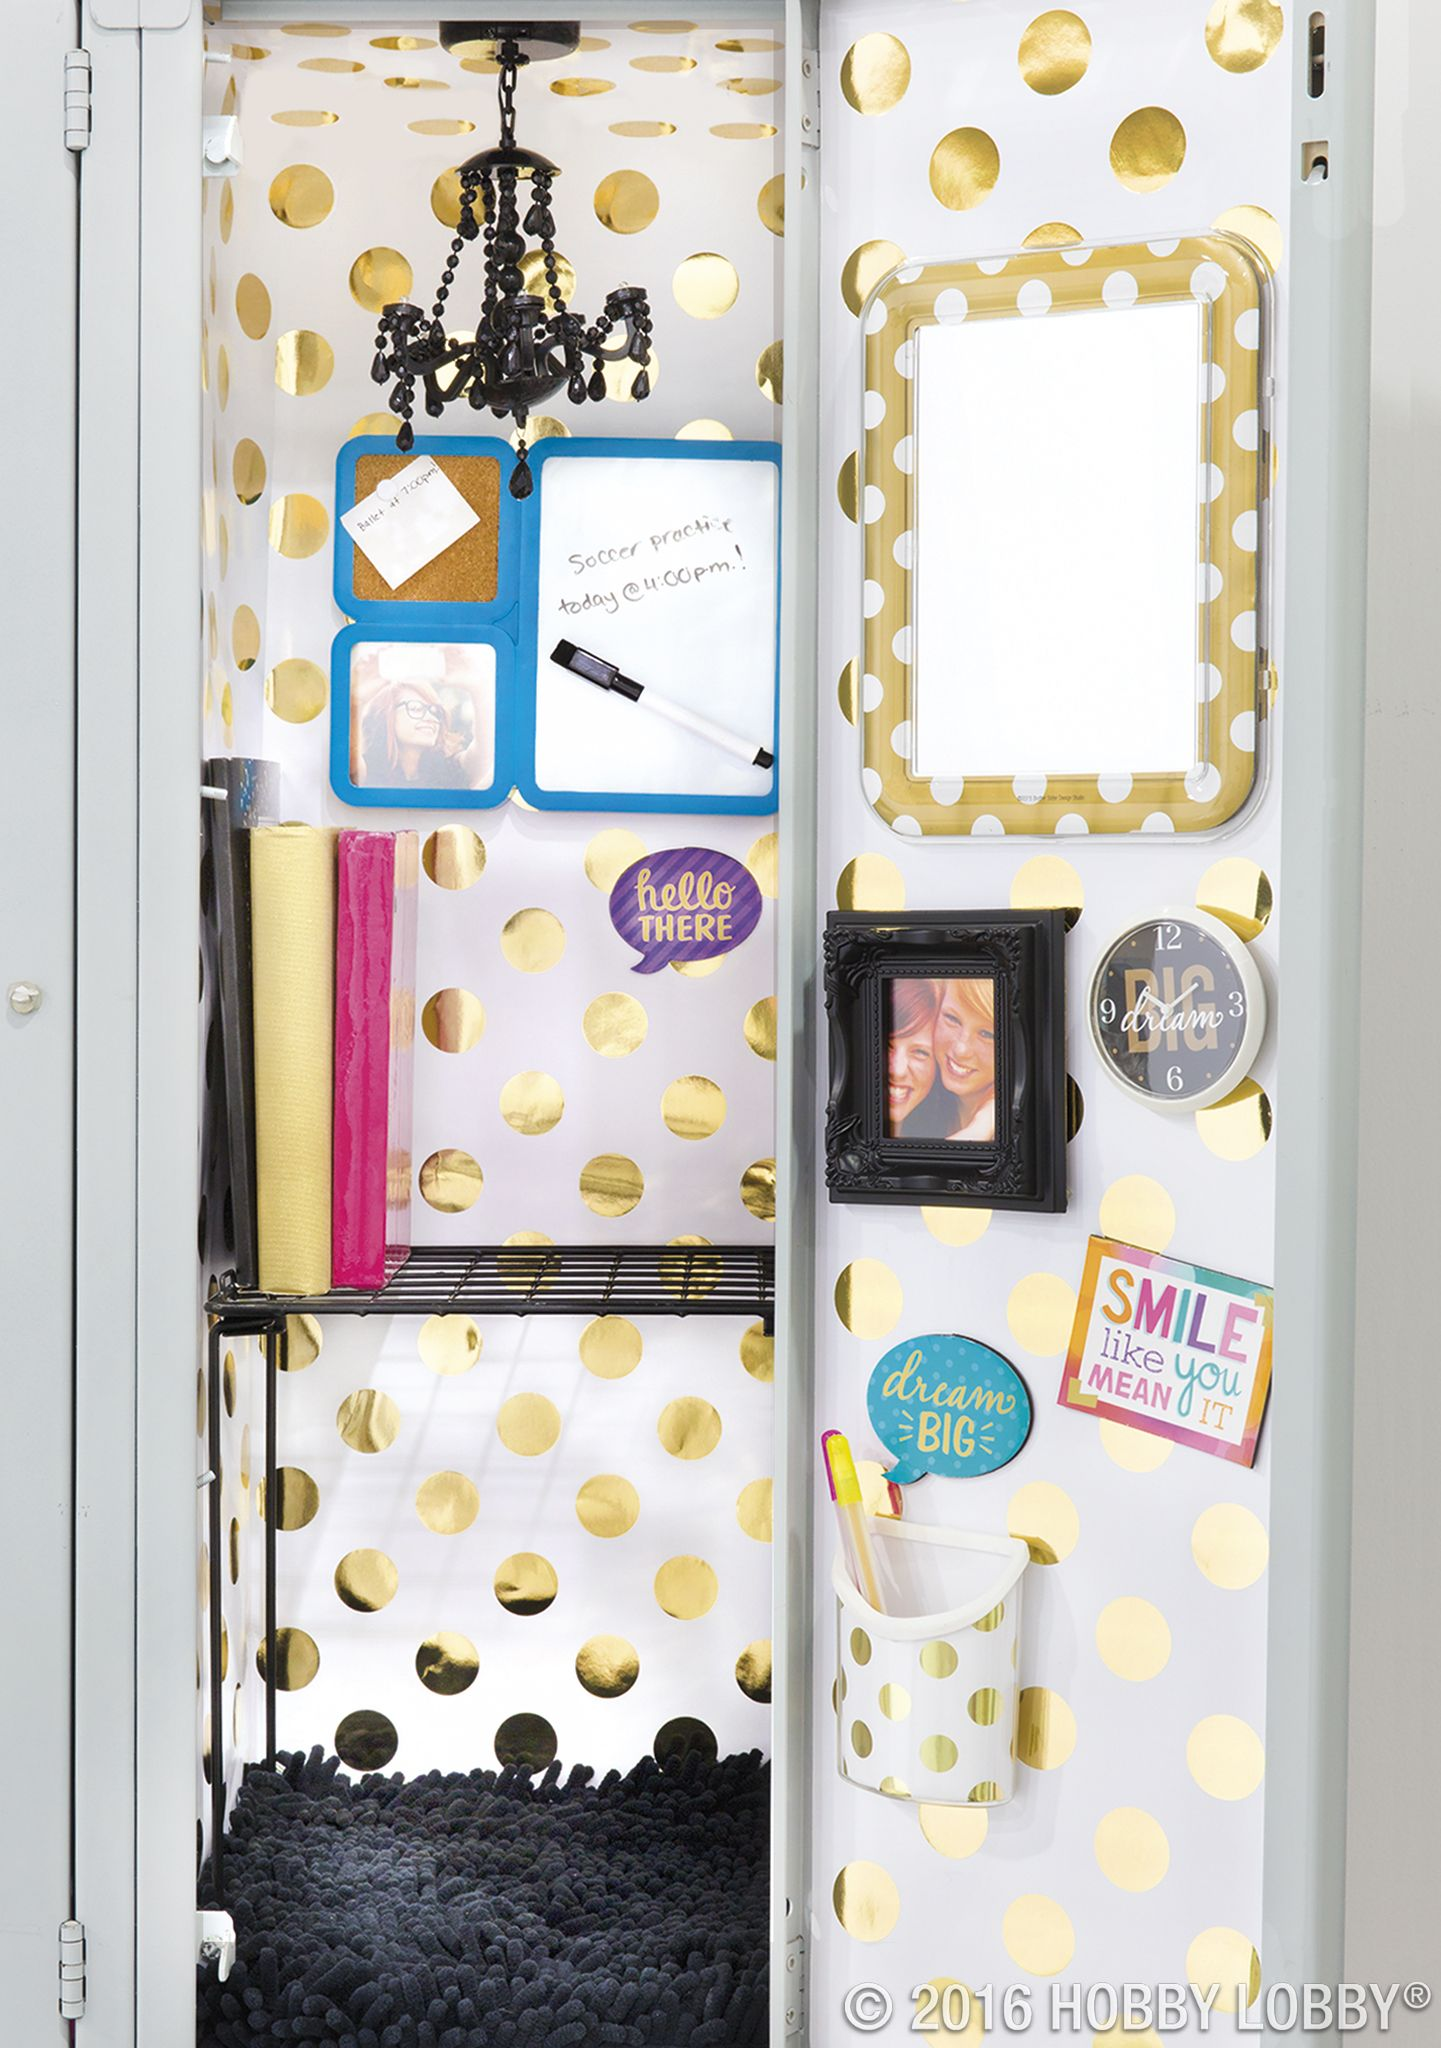 Pack your locker full of personality with fun and functional